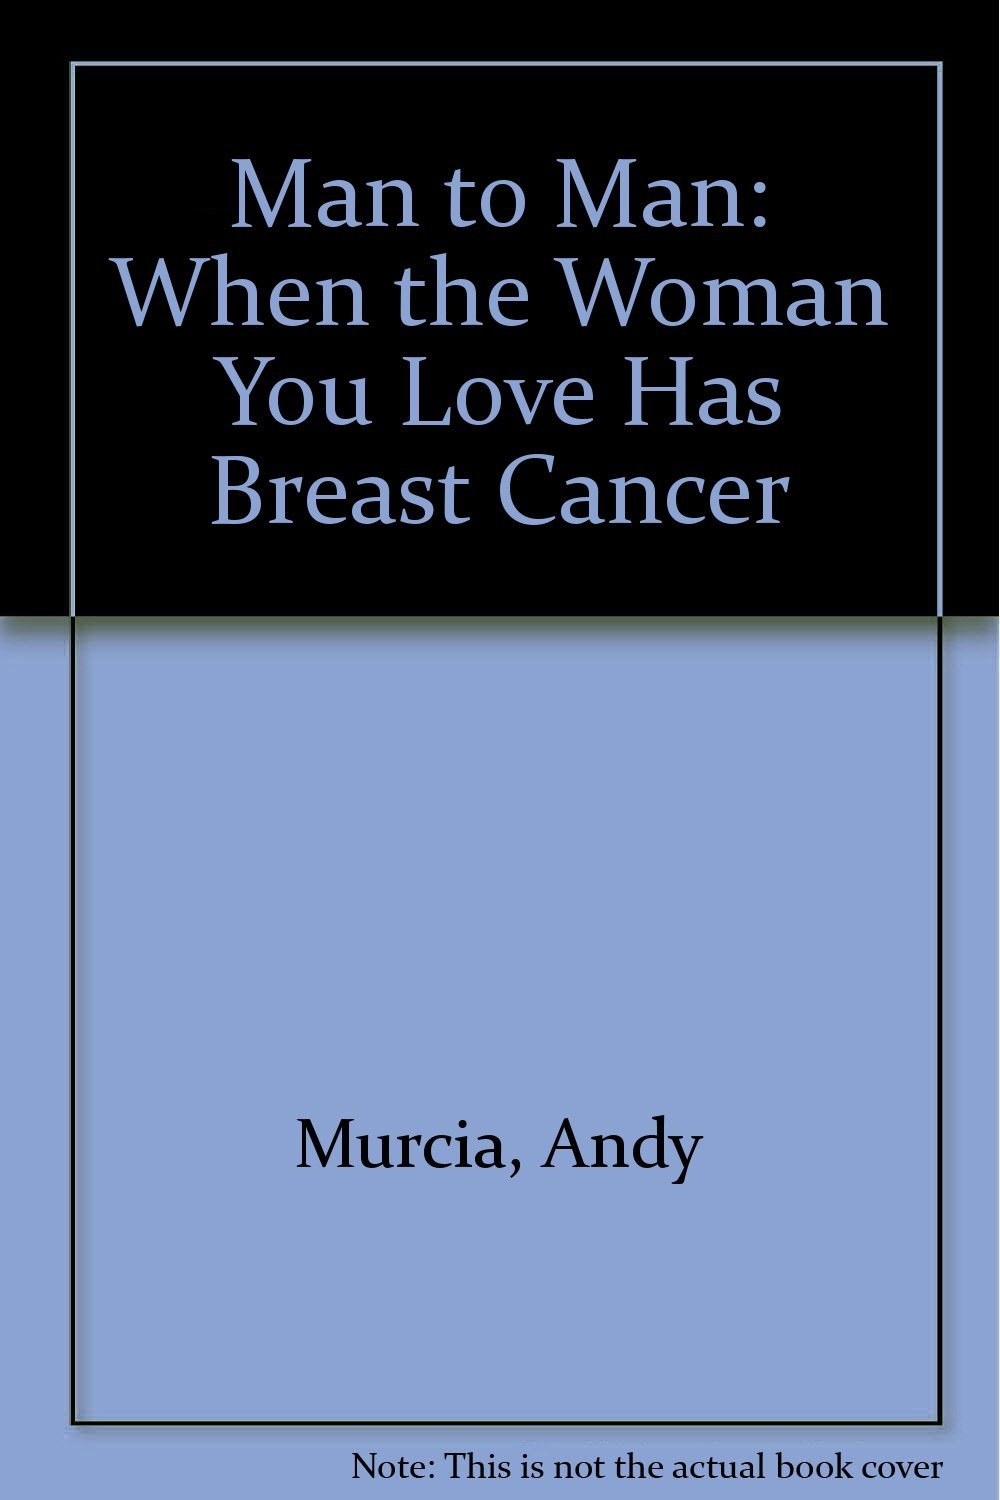 Man to Man: When the Woman You Love Has Breast Cancer [Mar 01, 1990] Murcia, ...